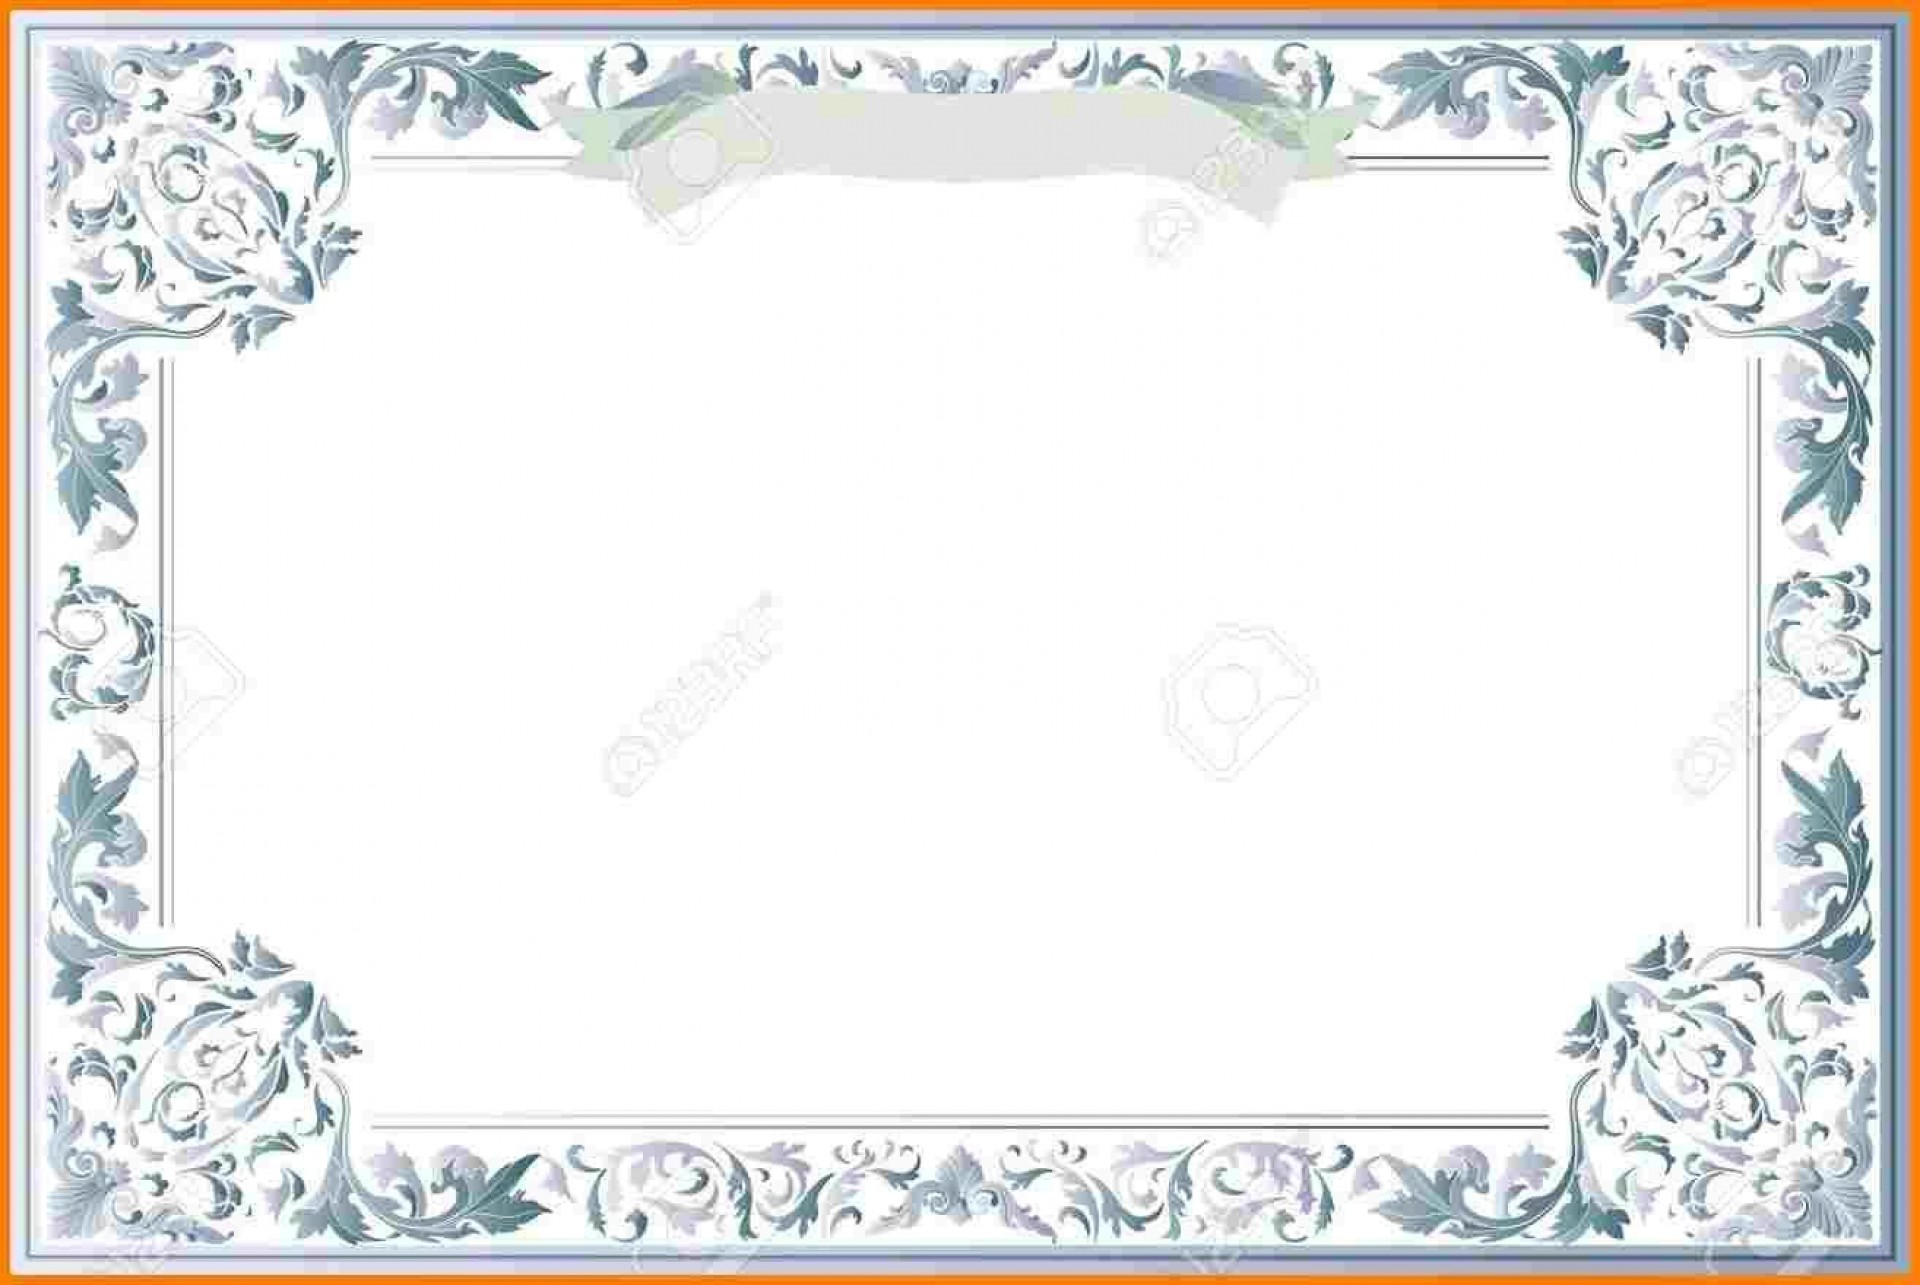 009 Remarkable Free Blank Certificate Template Photo  Templates Downloadable Printable And Award Gift For Word1920